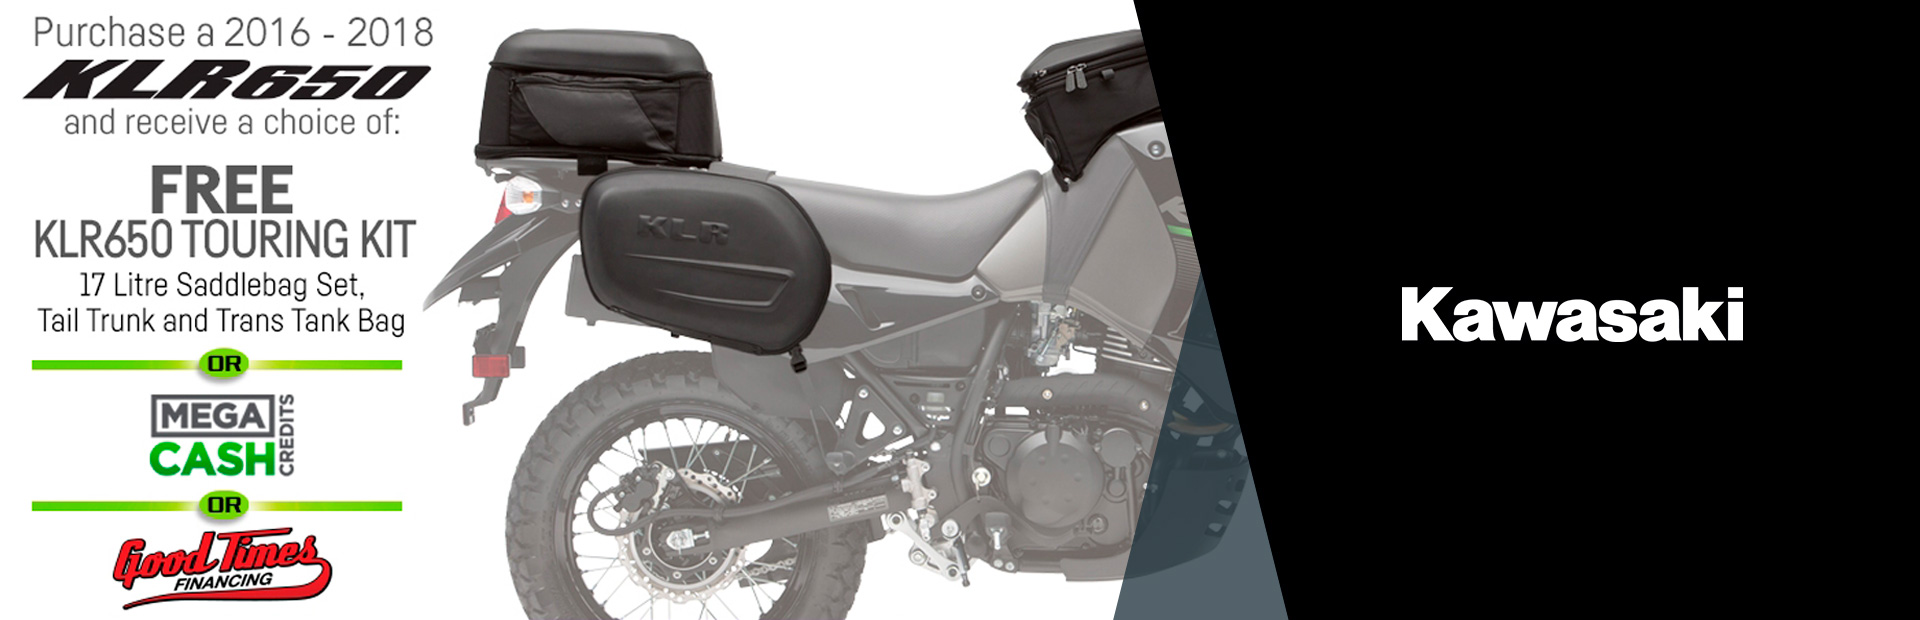 Kawasaki: KLR650 Free Accessories